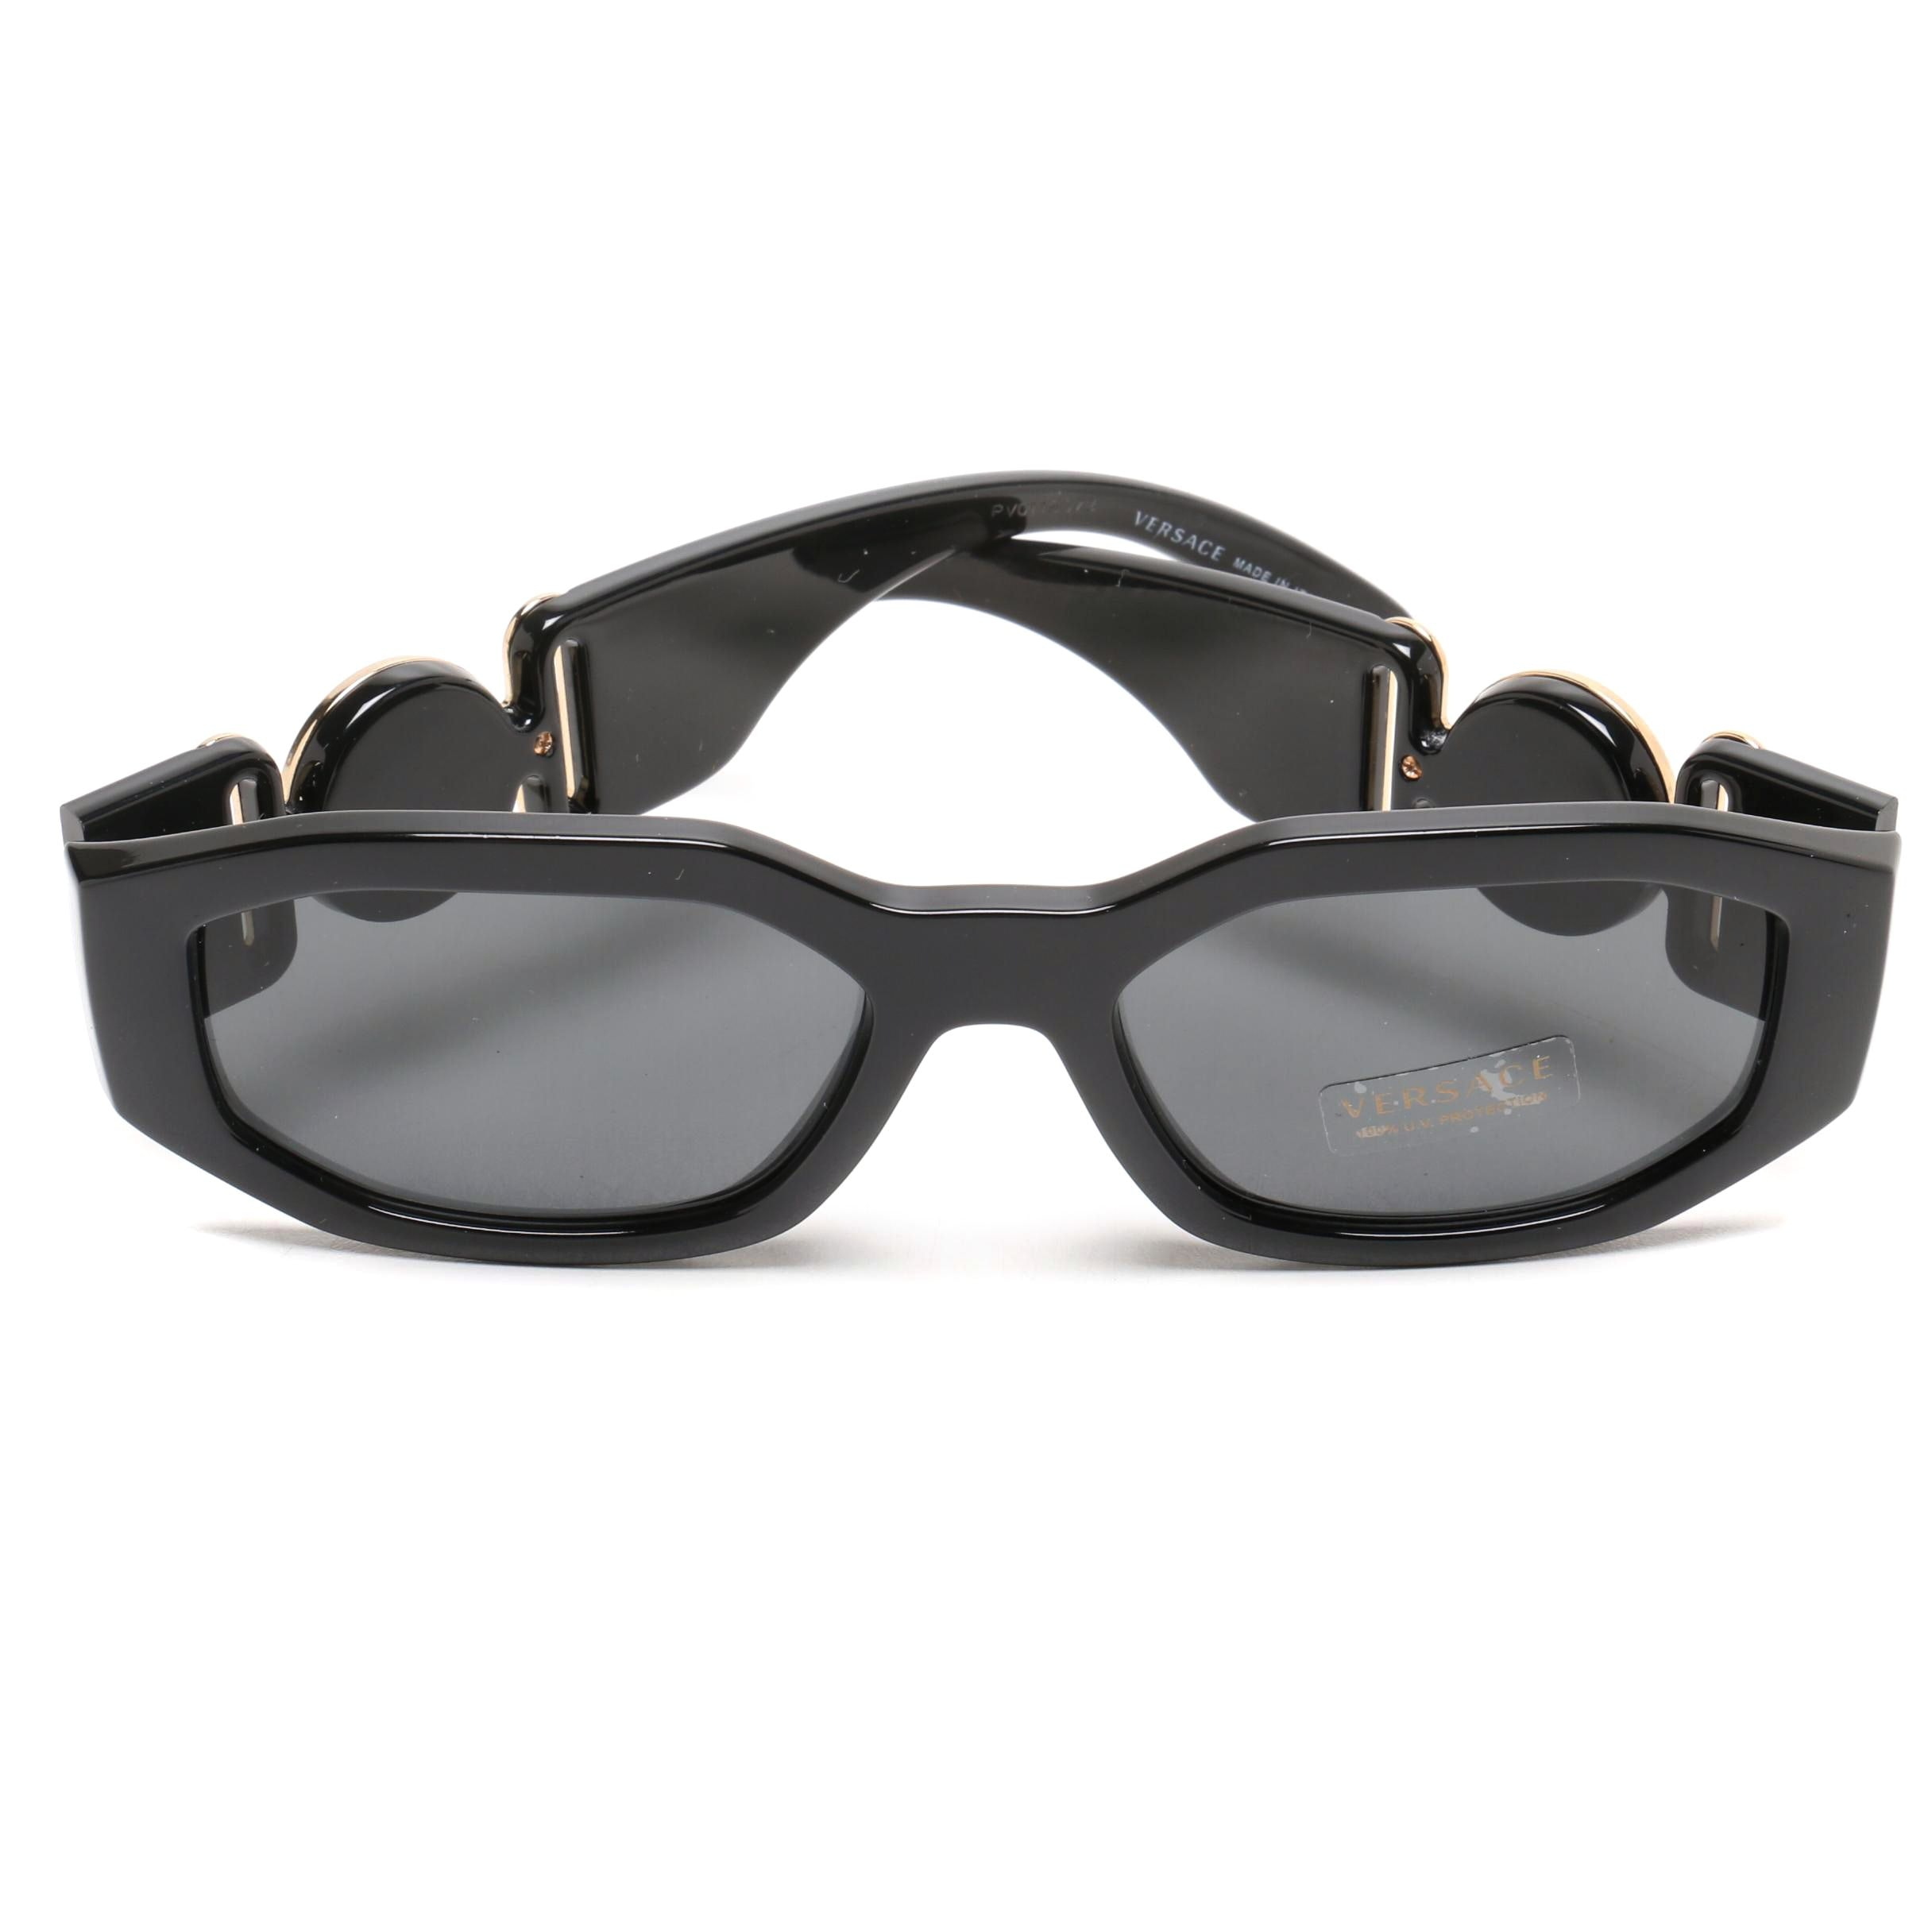 Versace Medusa Accented Black Sunglasses